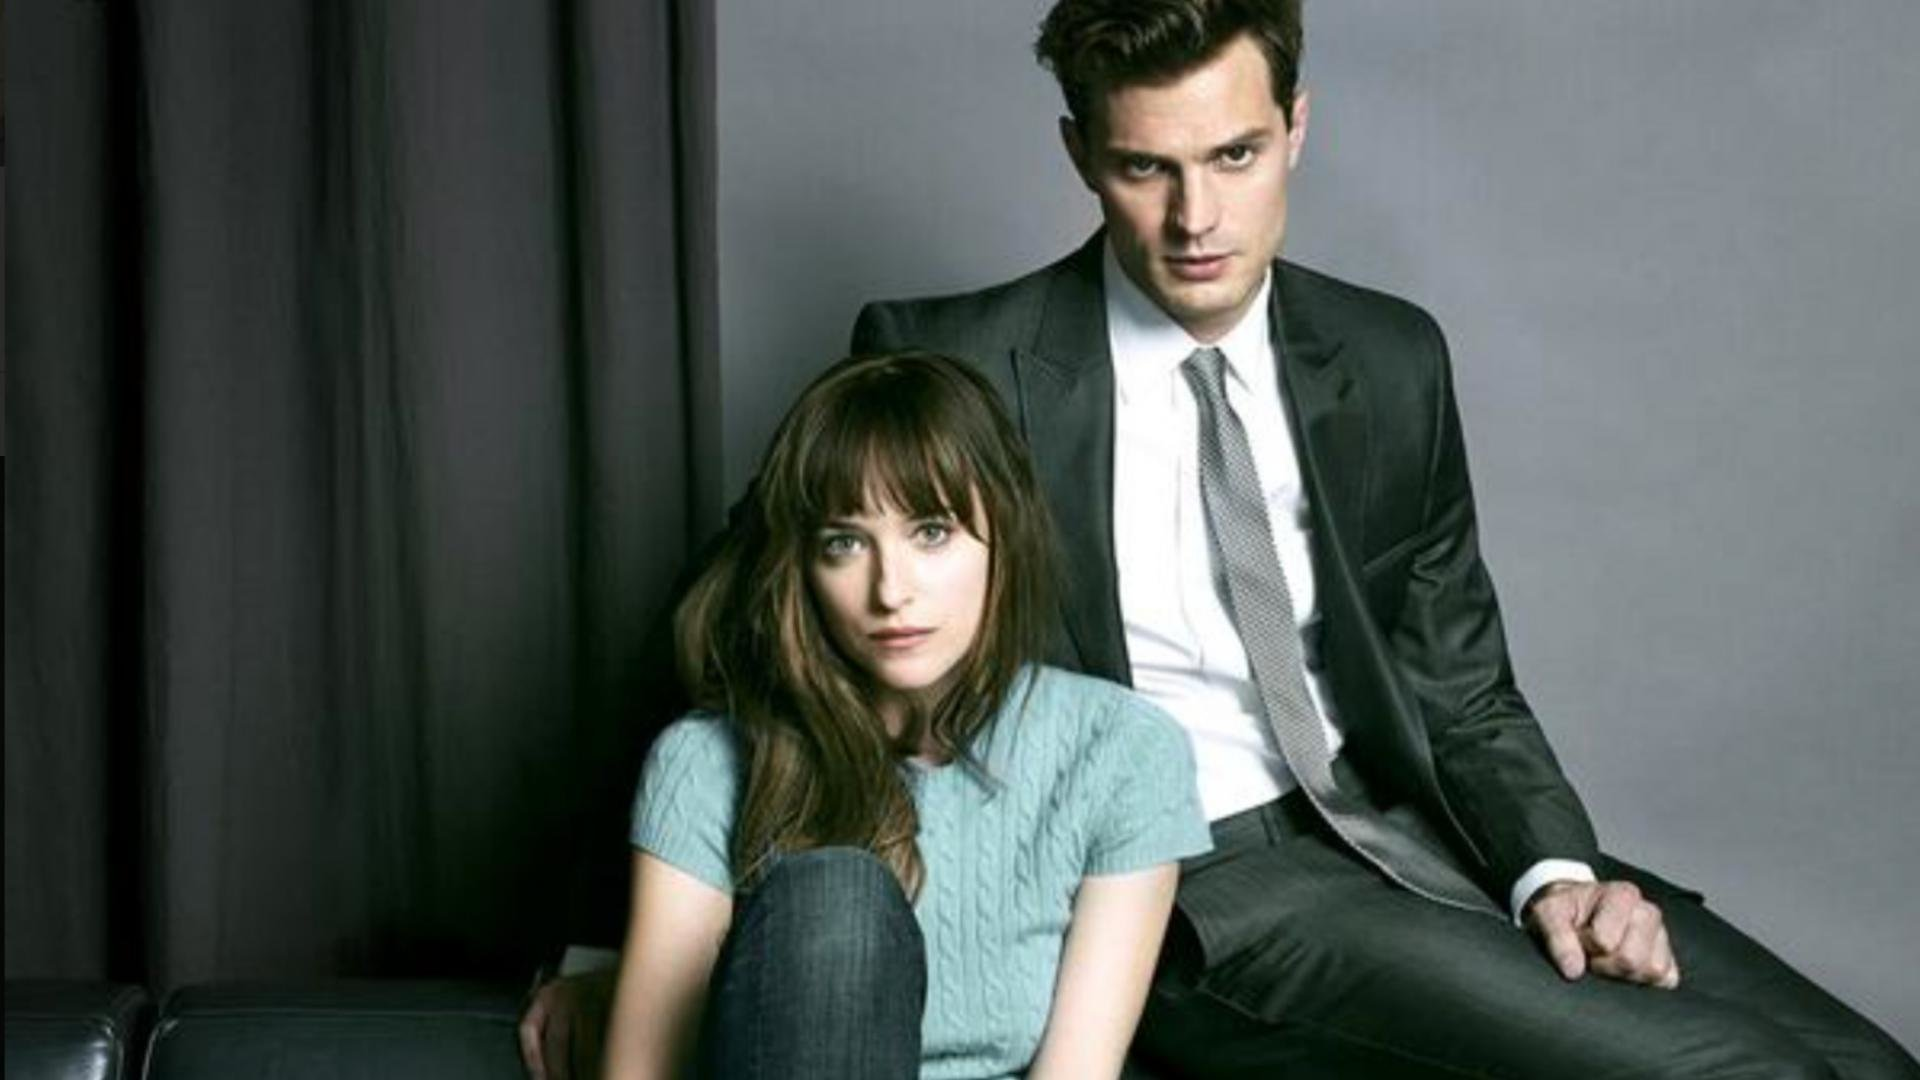 Fifty Shades Of Grey wallpapers HD for desktop backgrounds